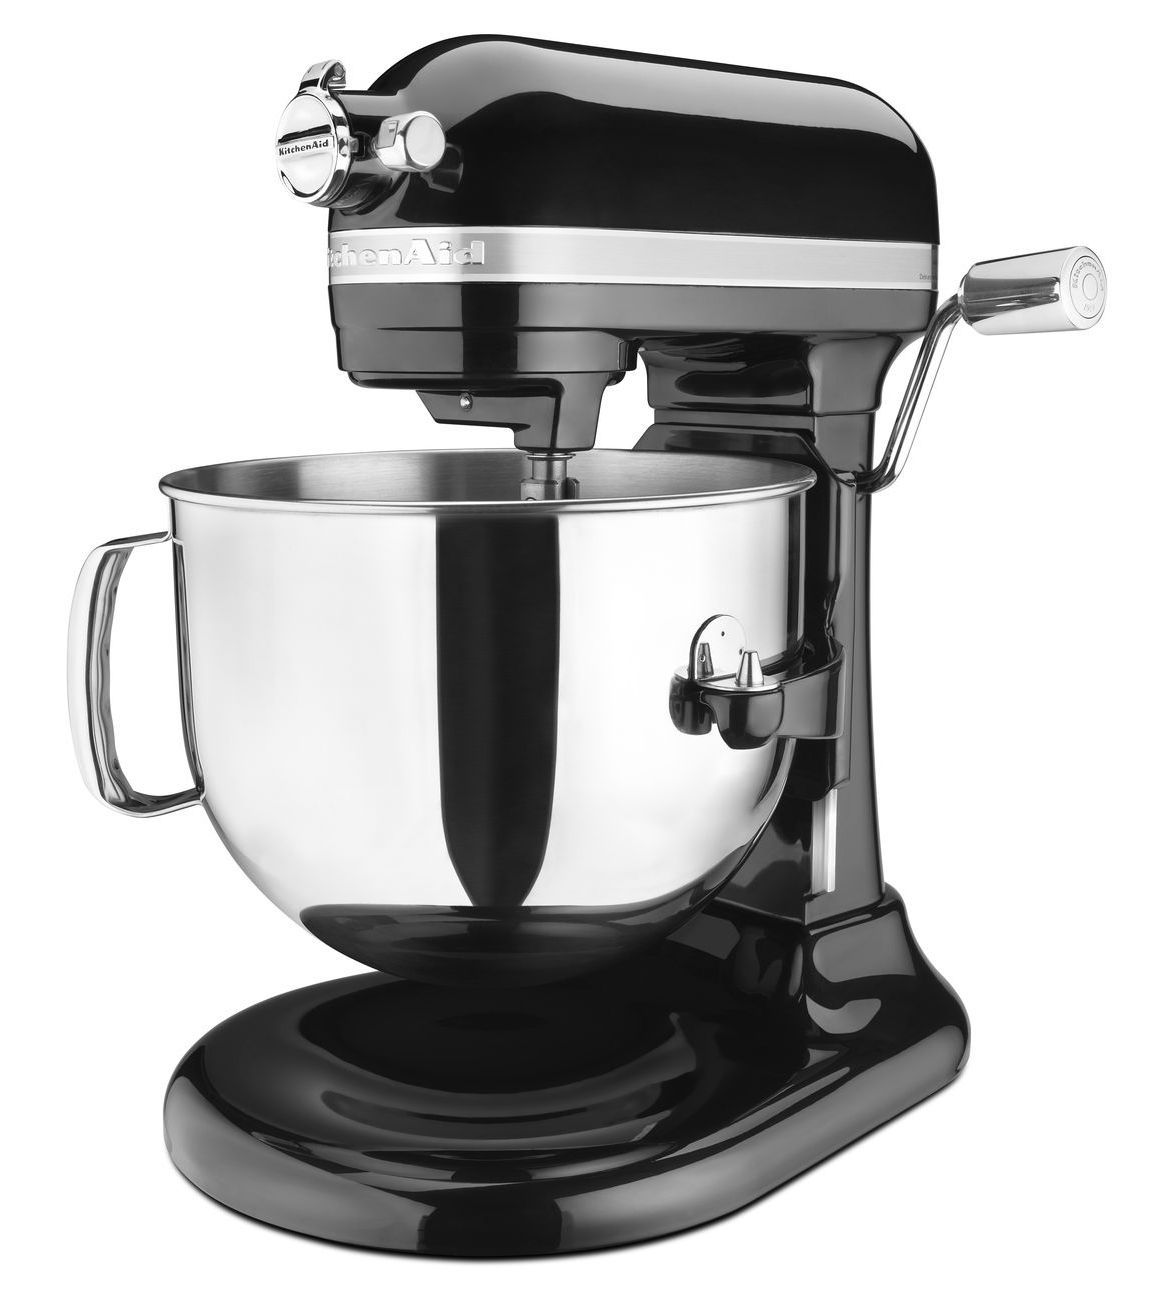 Learn About Features And Specifications For The Kitchenaid Kitchenaid Pro Line Series Bowl Lift Stand Mixer Candy Apple Red